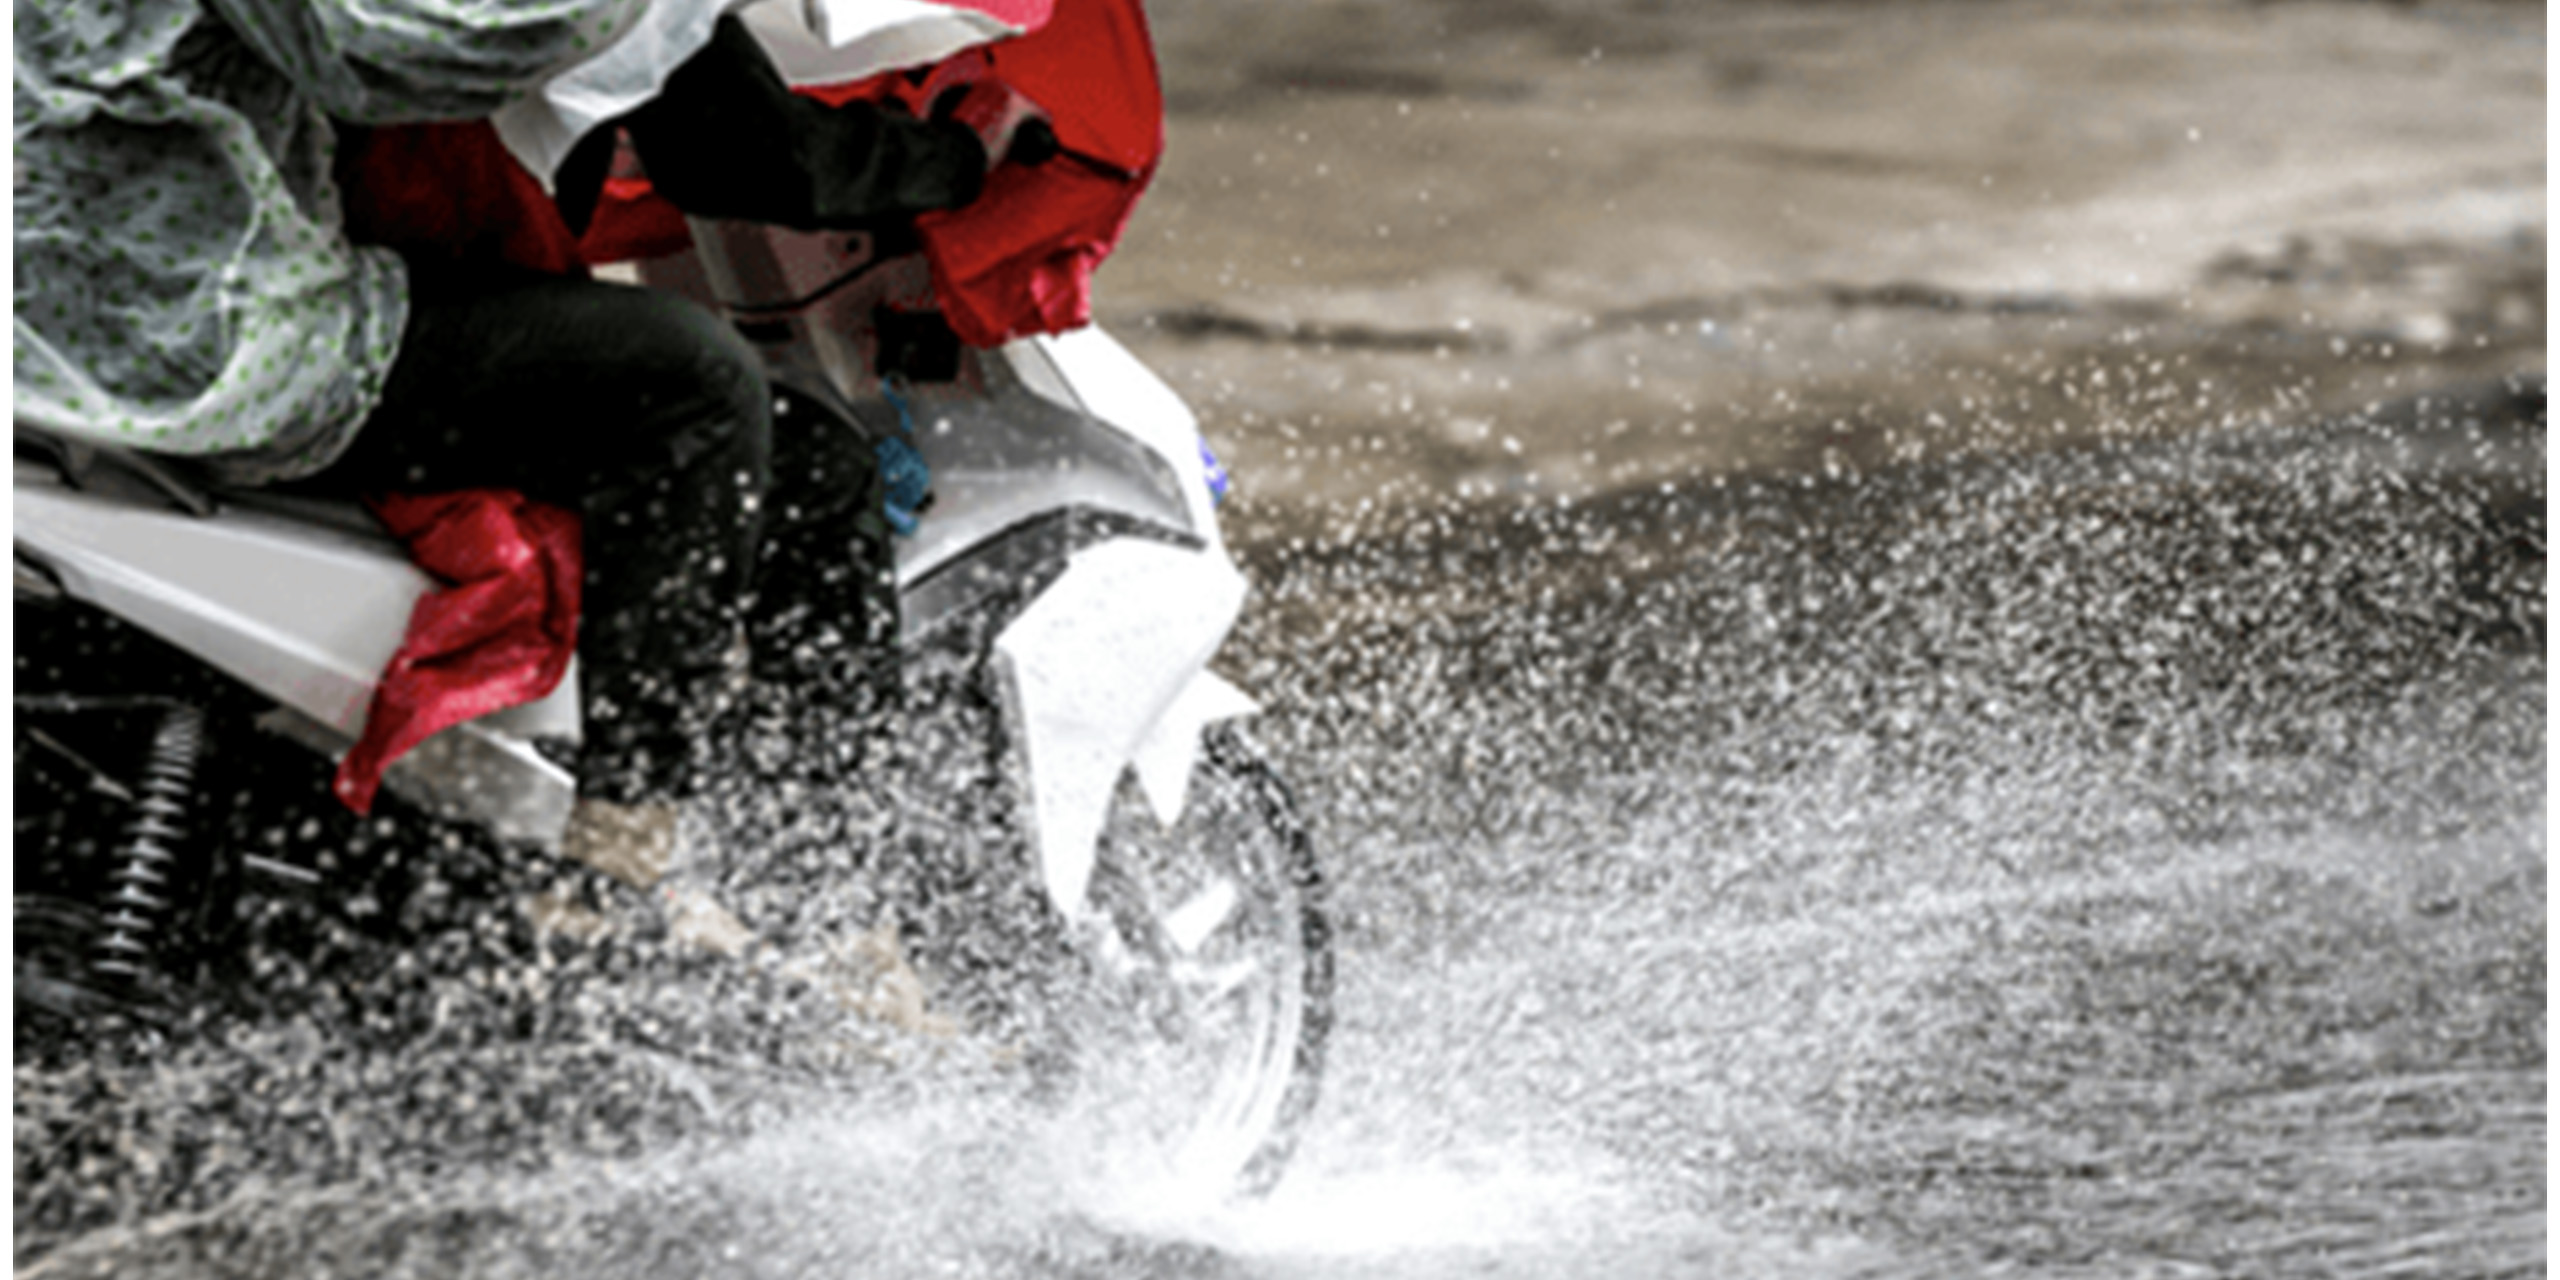 how to ride motorcycle in the rain